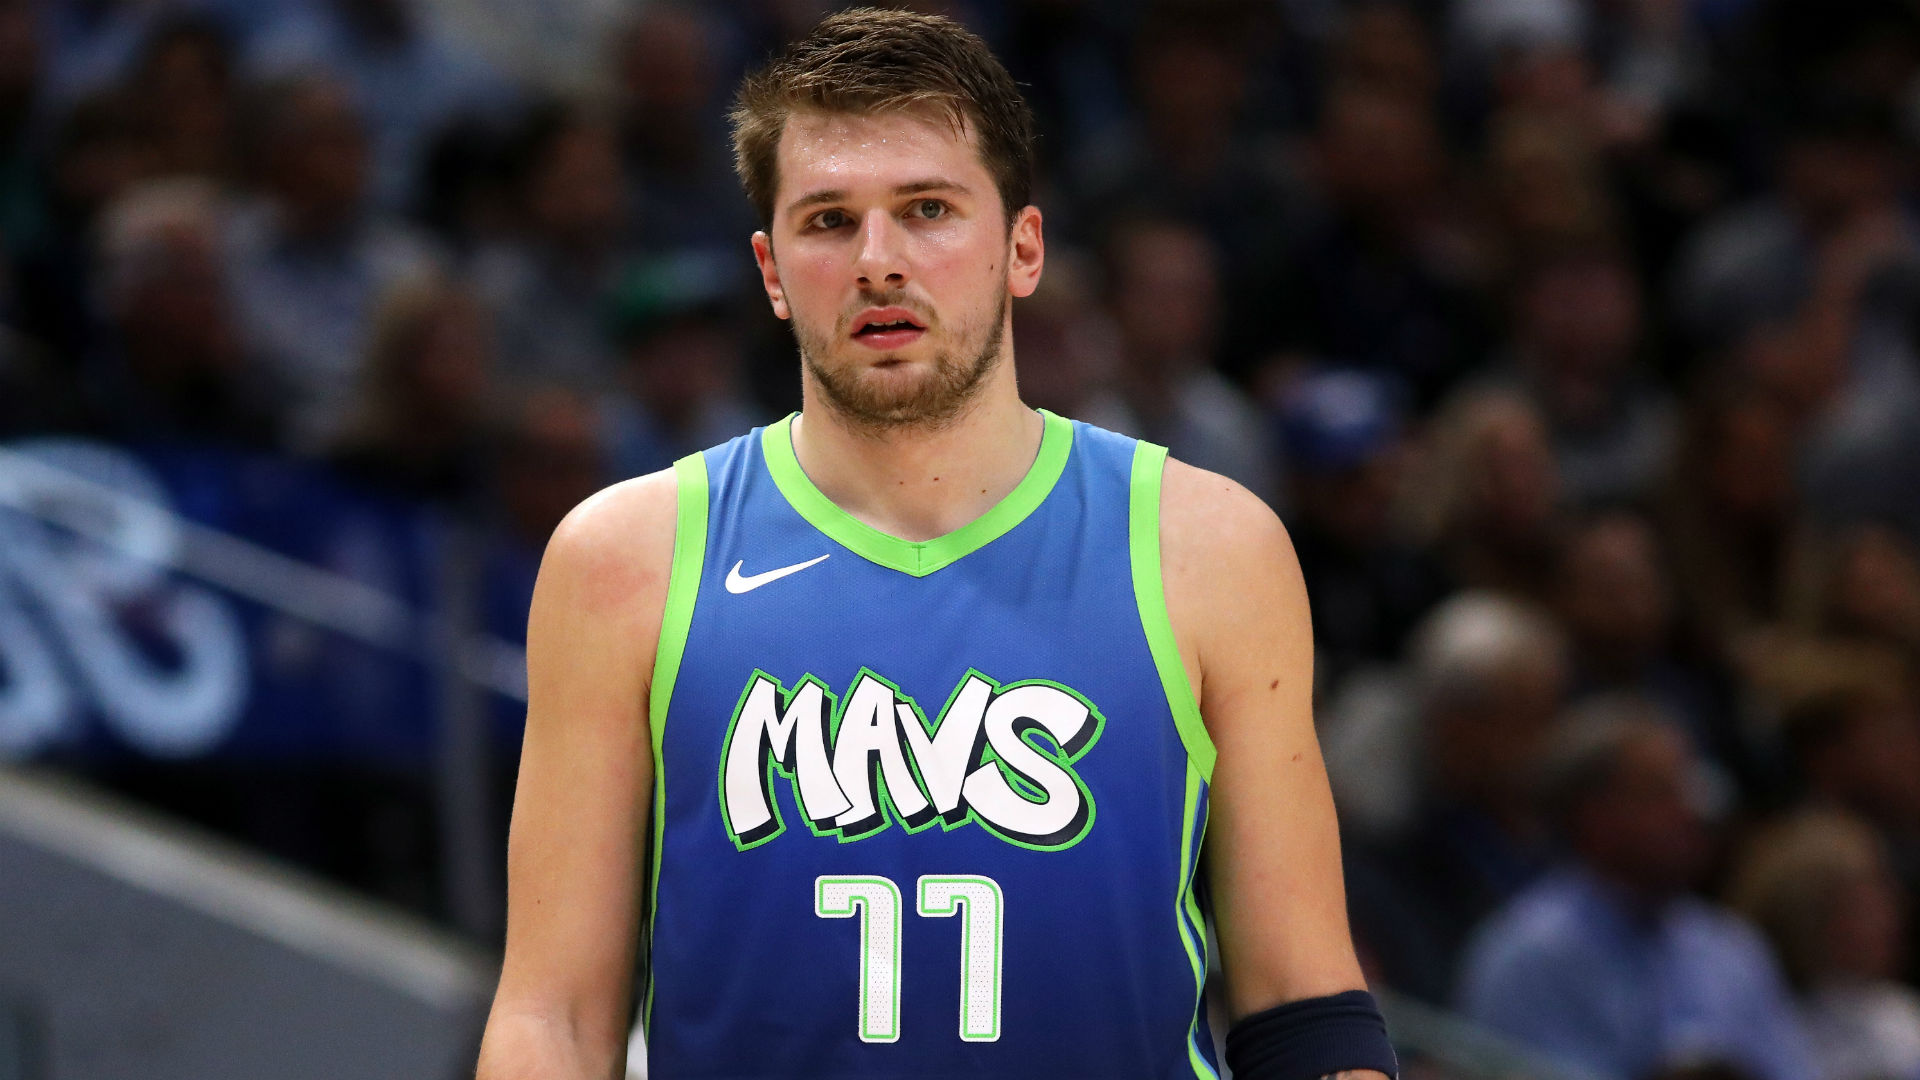 The Dallas Mavericks improved to 12-6 after Luka Doncic scored 42 points to cap a remarkable November for the second-year star.